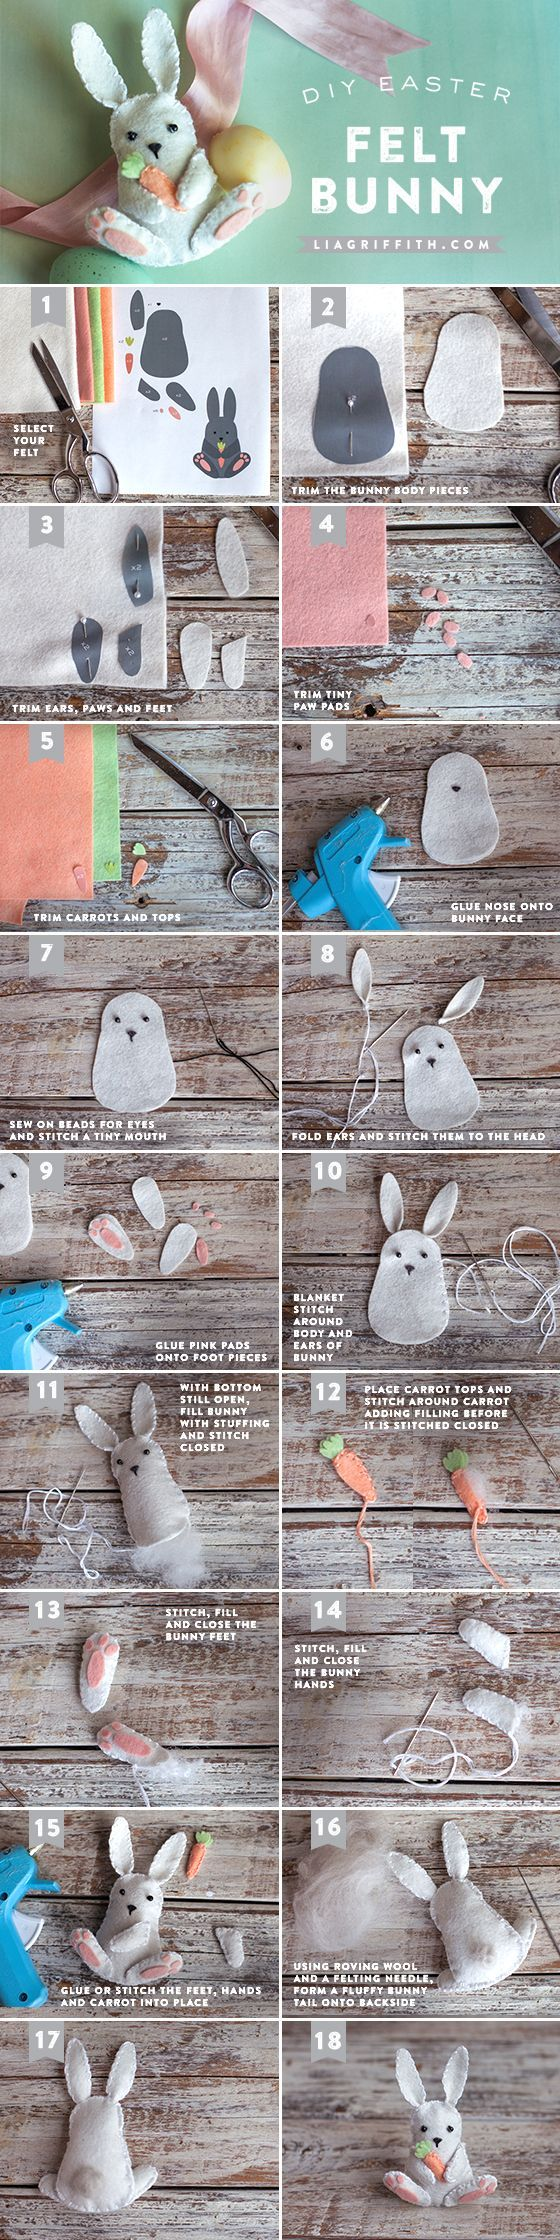 DIY Felt Bunny for Easter